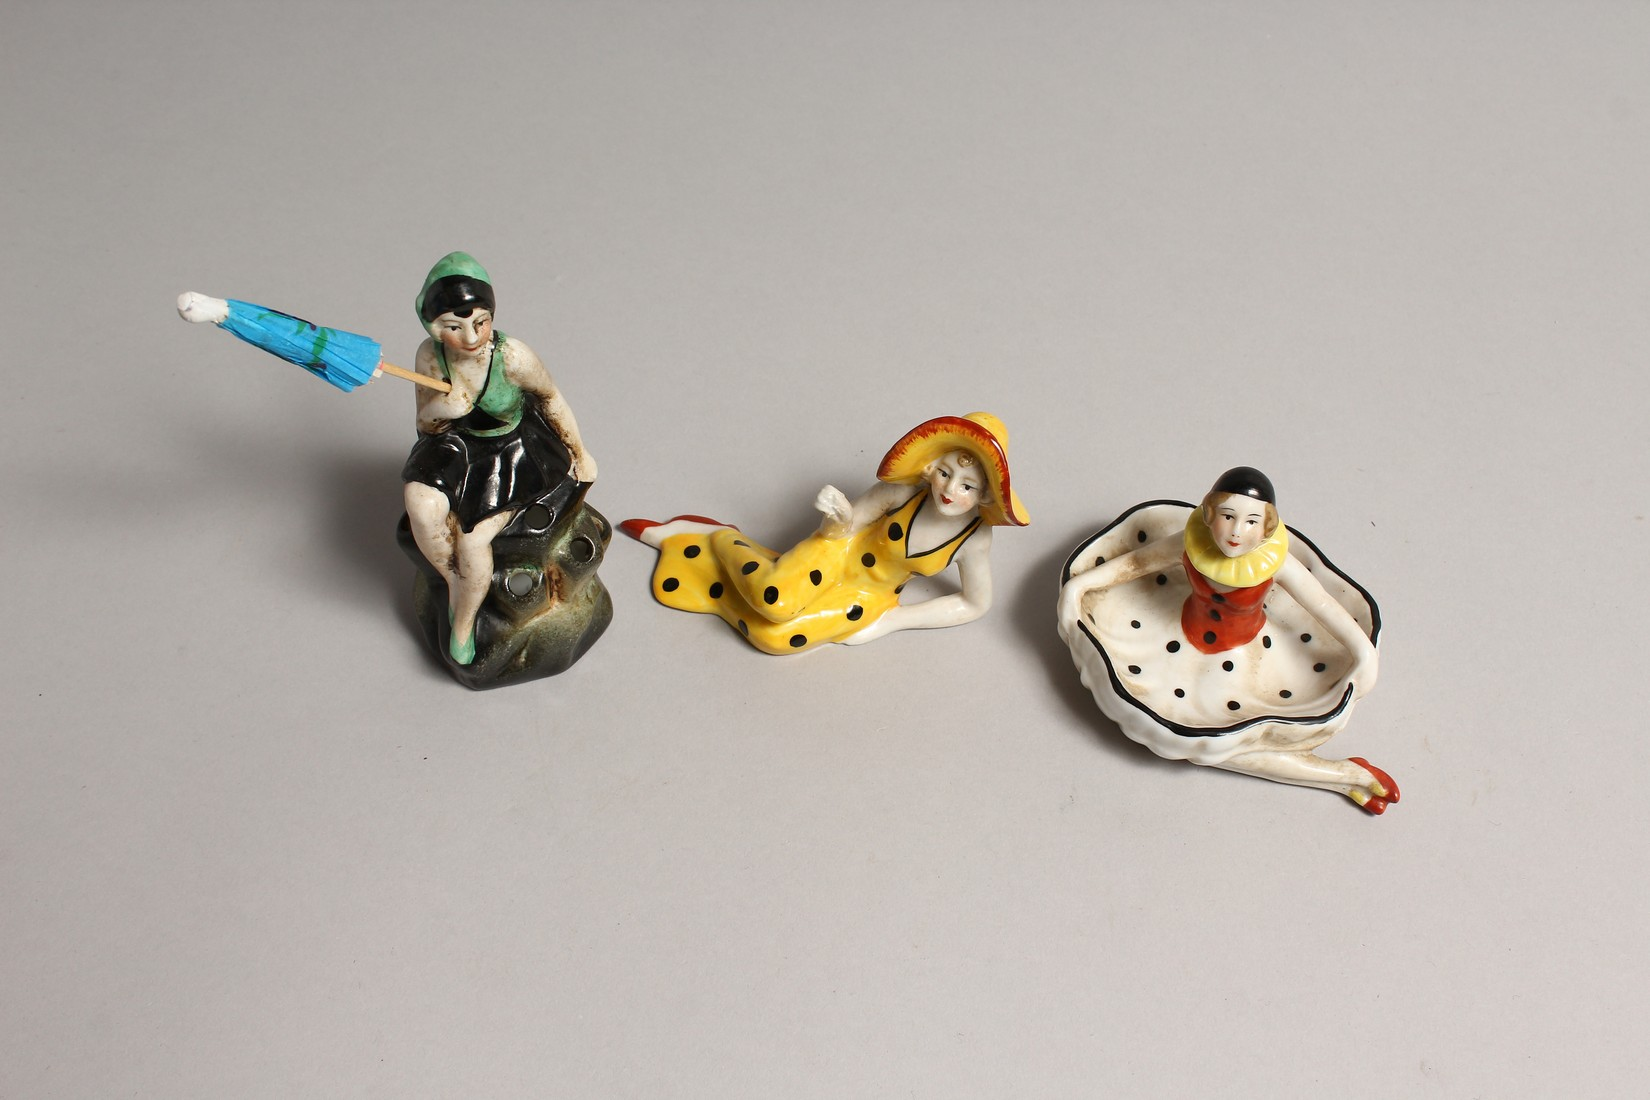 THREE CONTINENTAL PIN BATHER DOLLIES. - Image 2 of 3